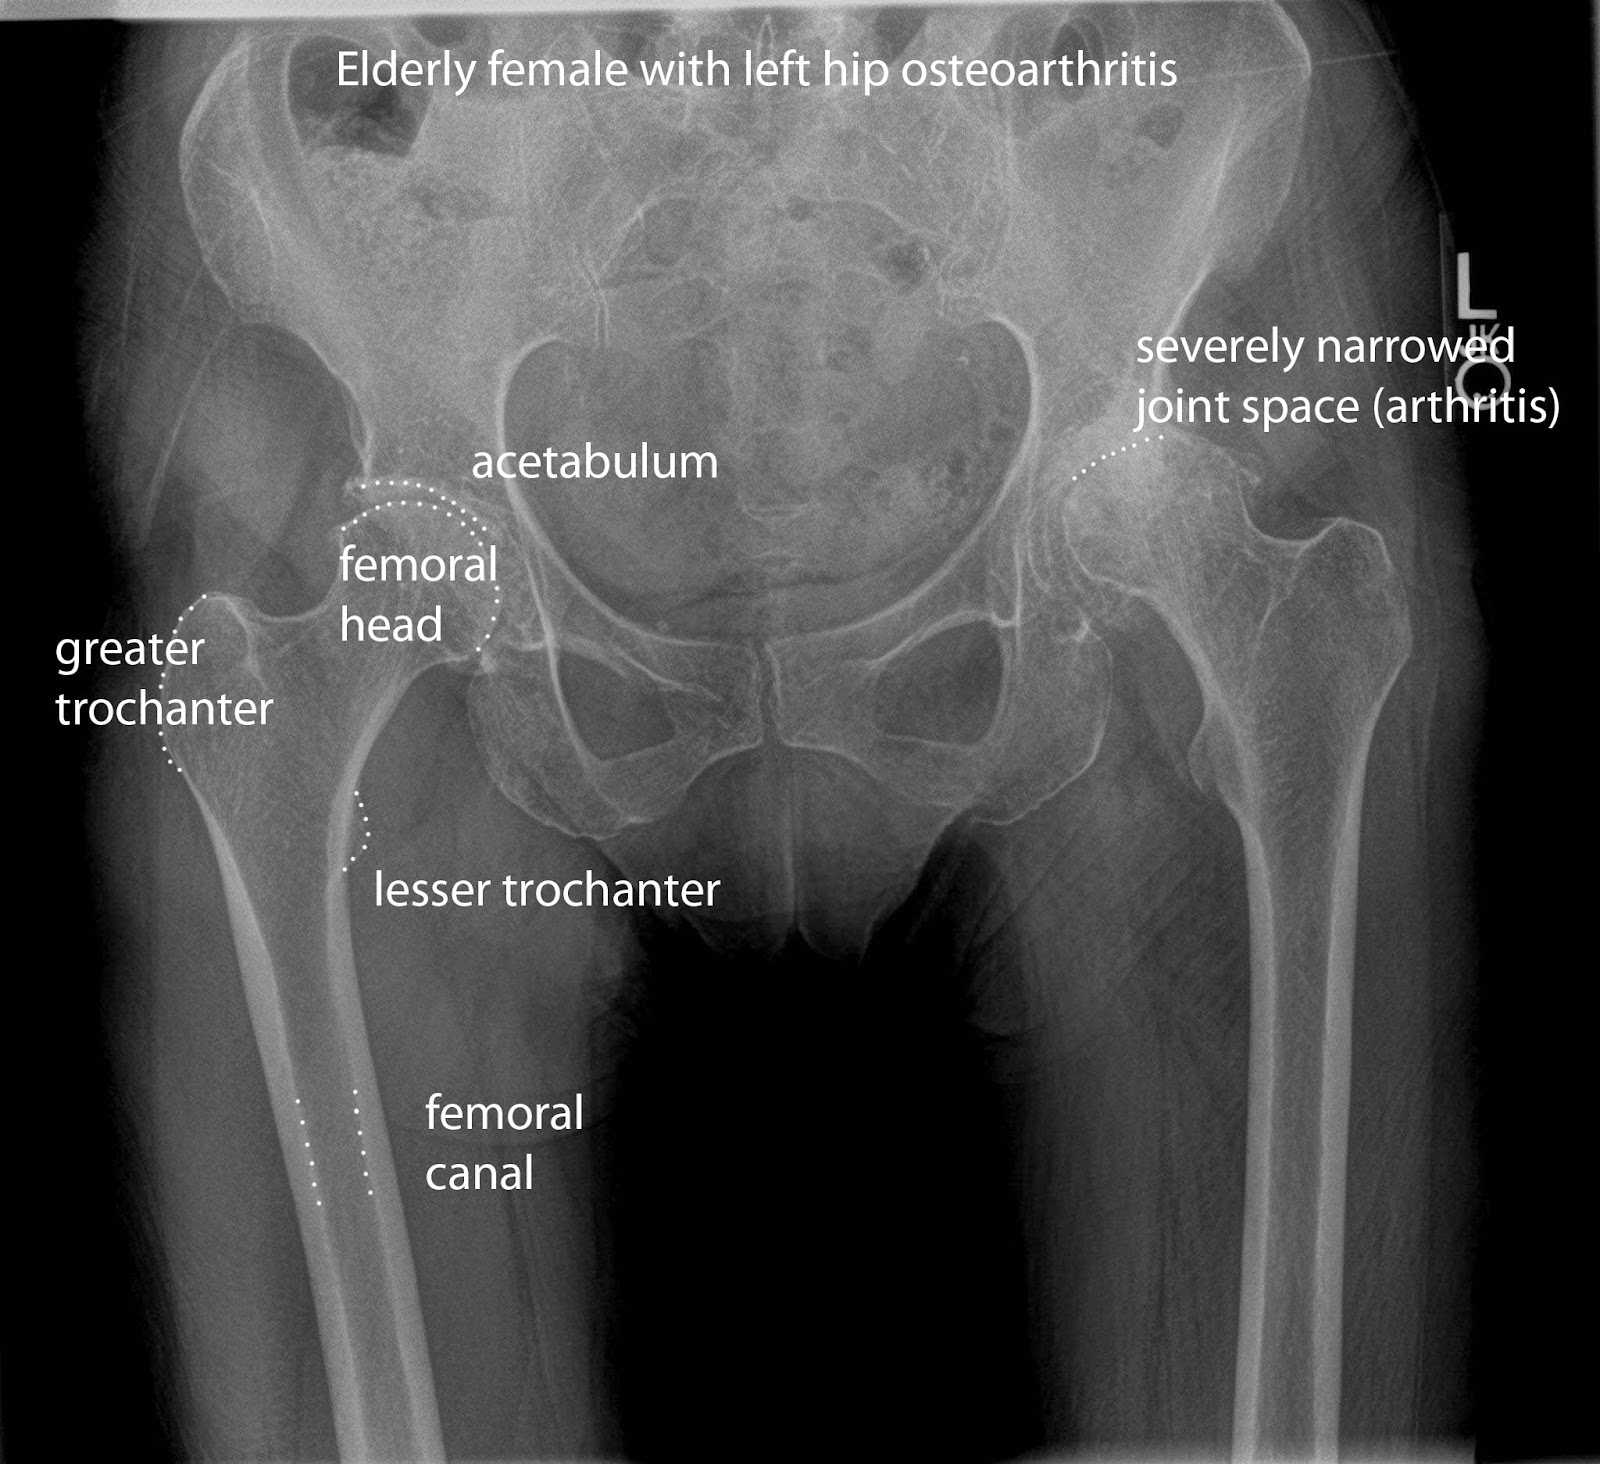 Hip joint Radiologyanatomy | Radiology Anatomy Images